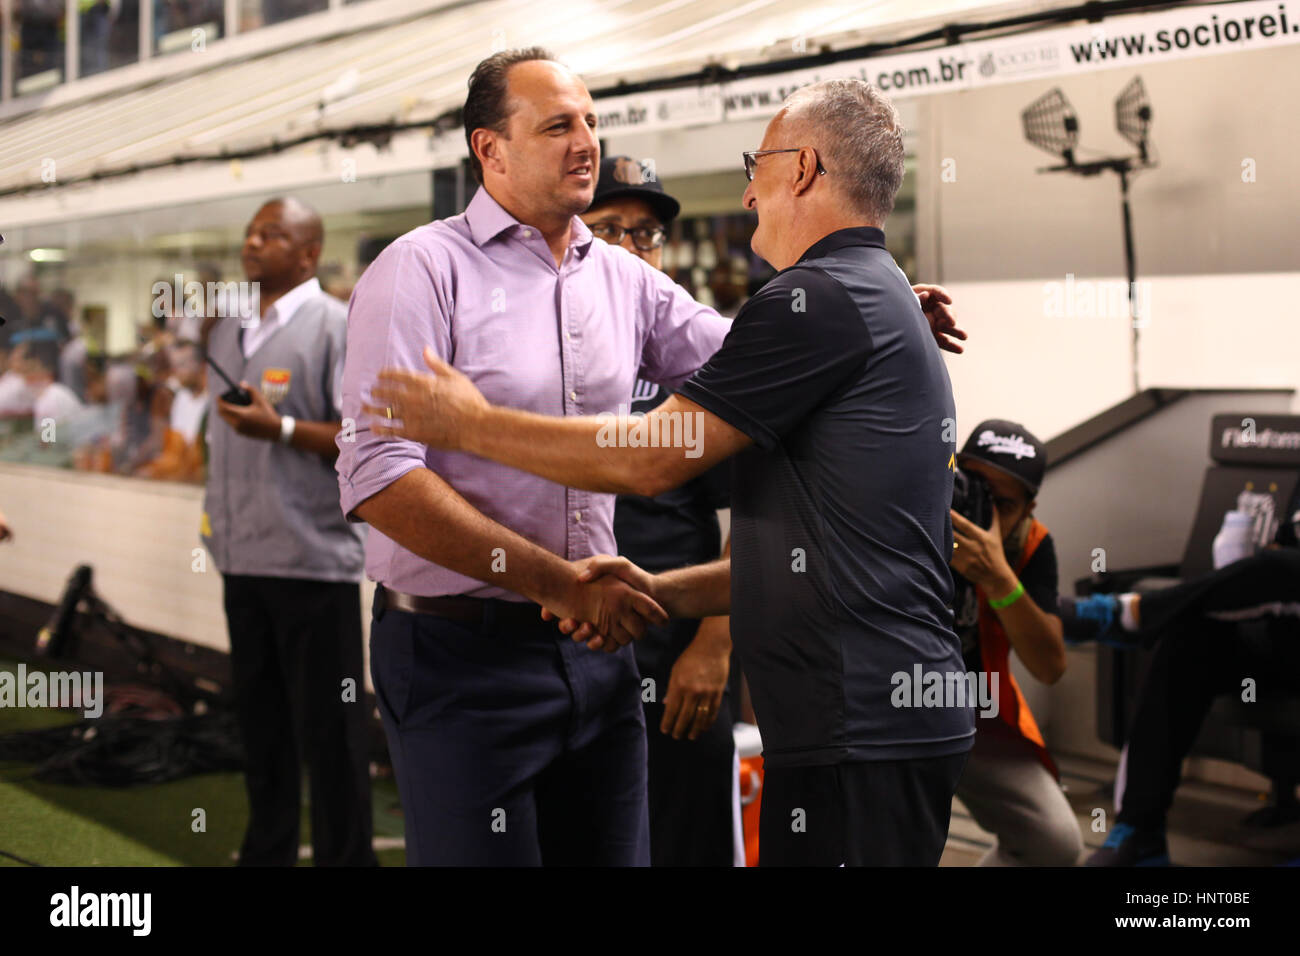 Santos brazil 15th feb 2017 the rogrio ceni and dorival junior santos brazil 15th feb 2017 the rogrio ceni and dorival junior technicians greet before the game between santos vs so paulo held at the estadio urbano m4hsunfo Images